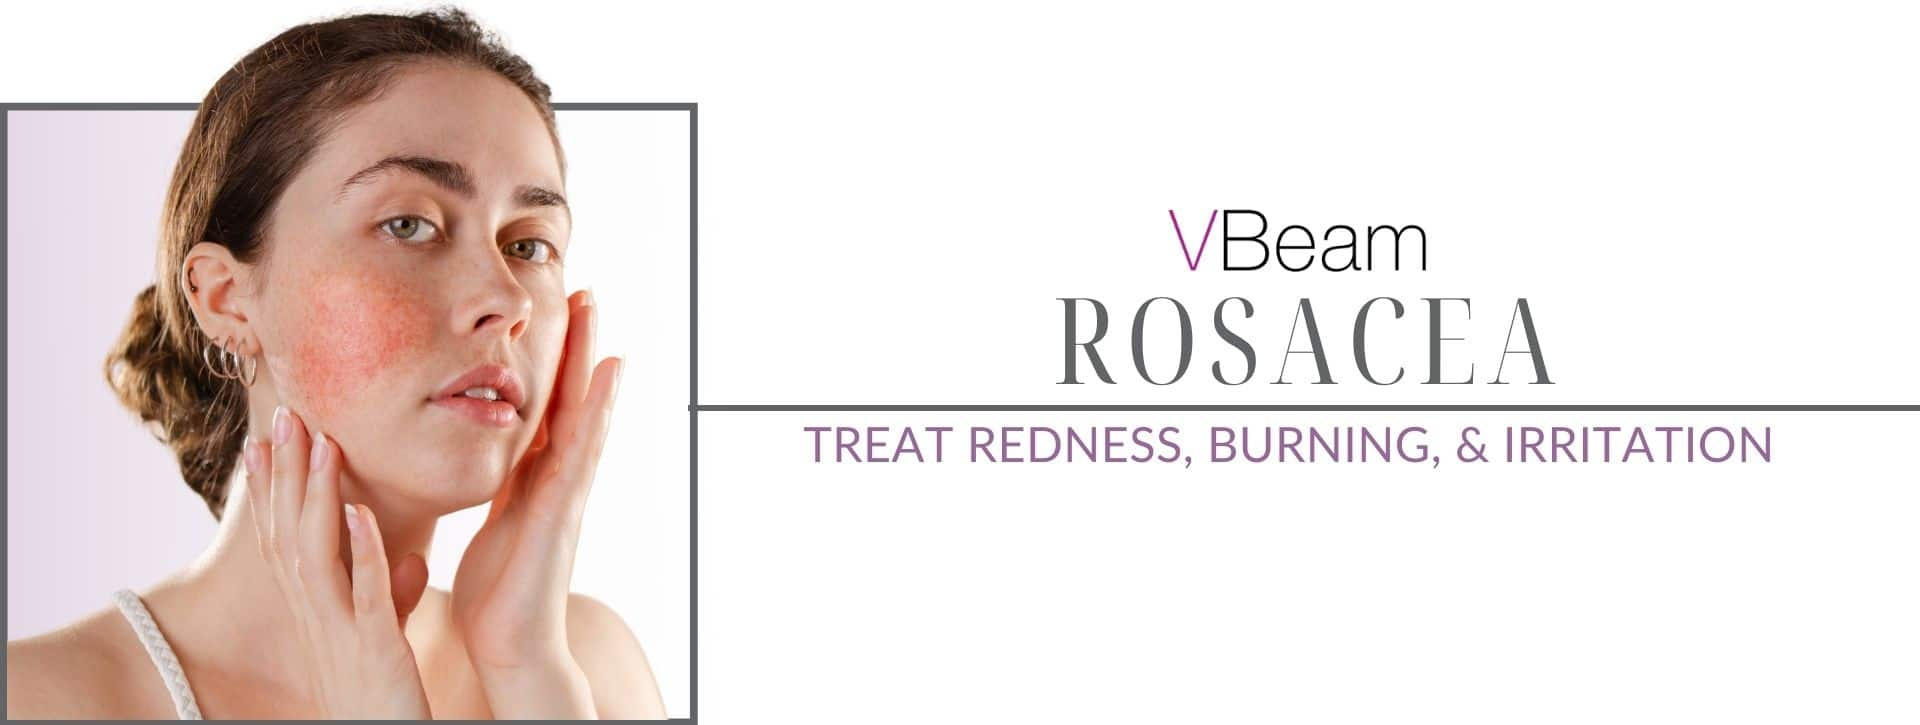 Woman's face from Rosacea treatment with Vbeam laser in Los Angeles